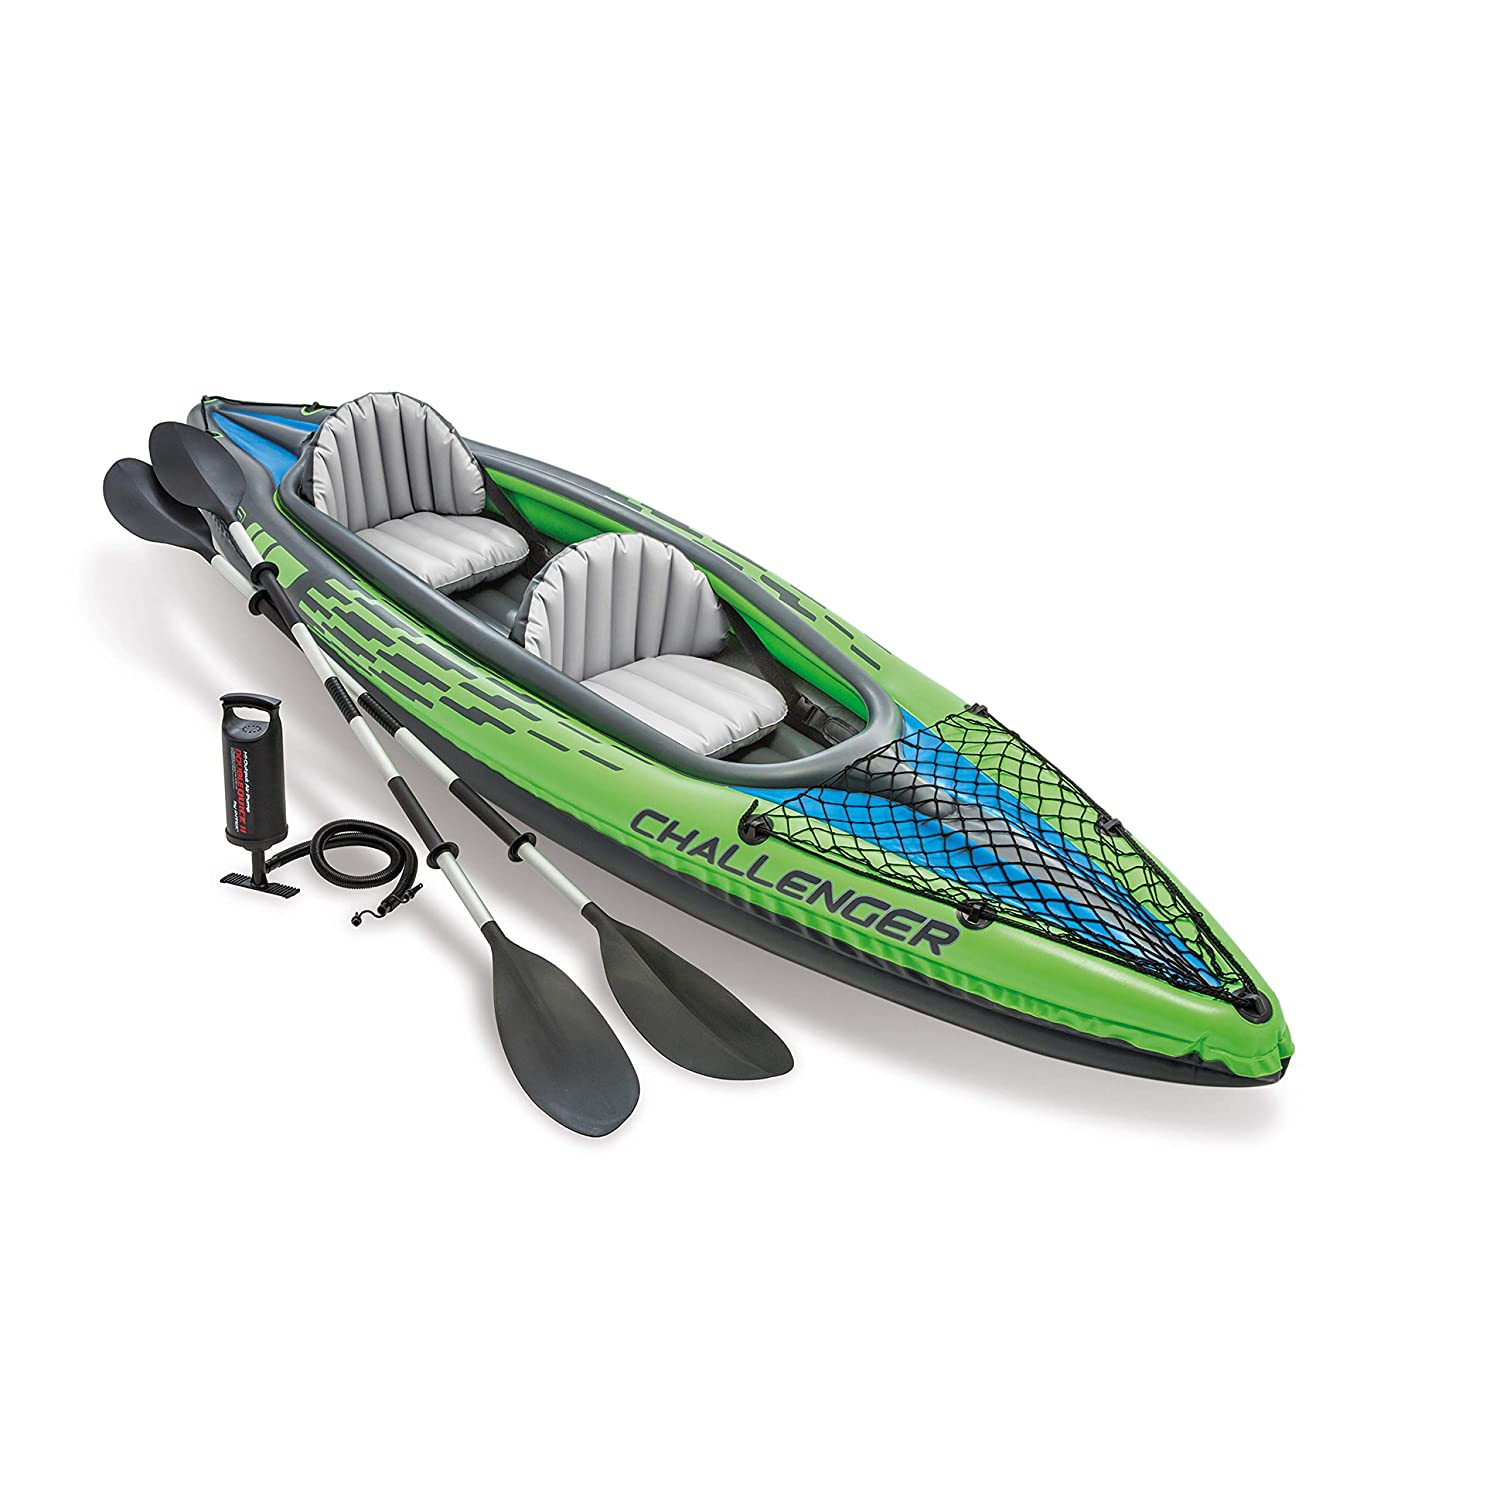 1. Intex Challenger K2 Kayak